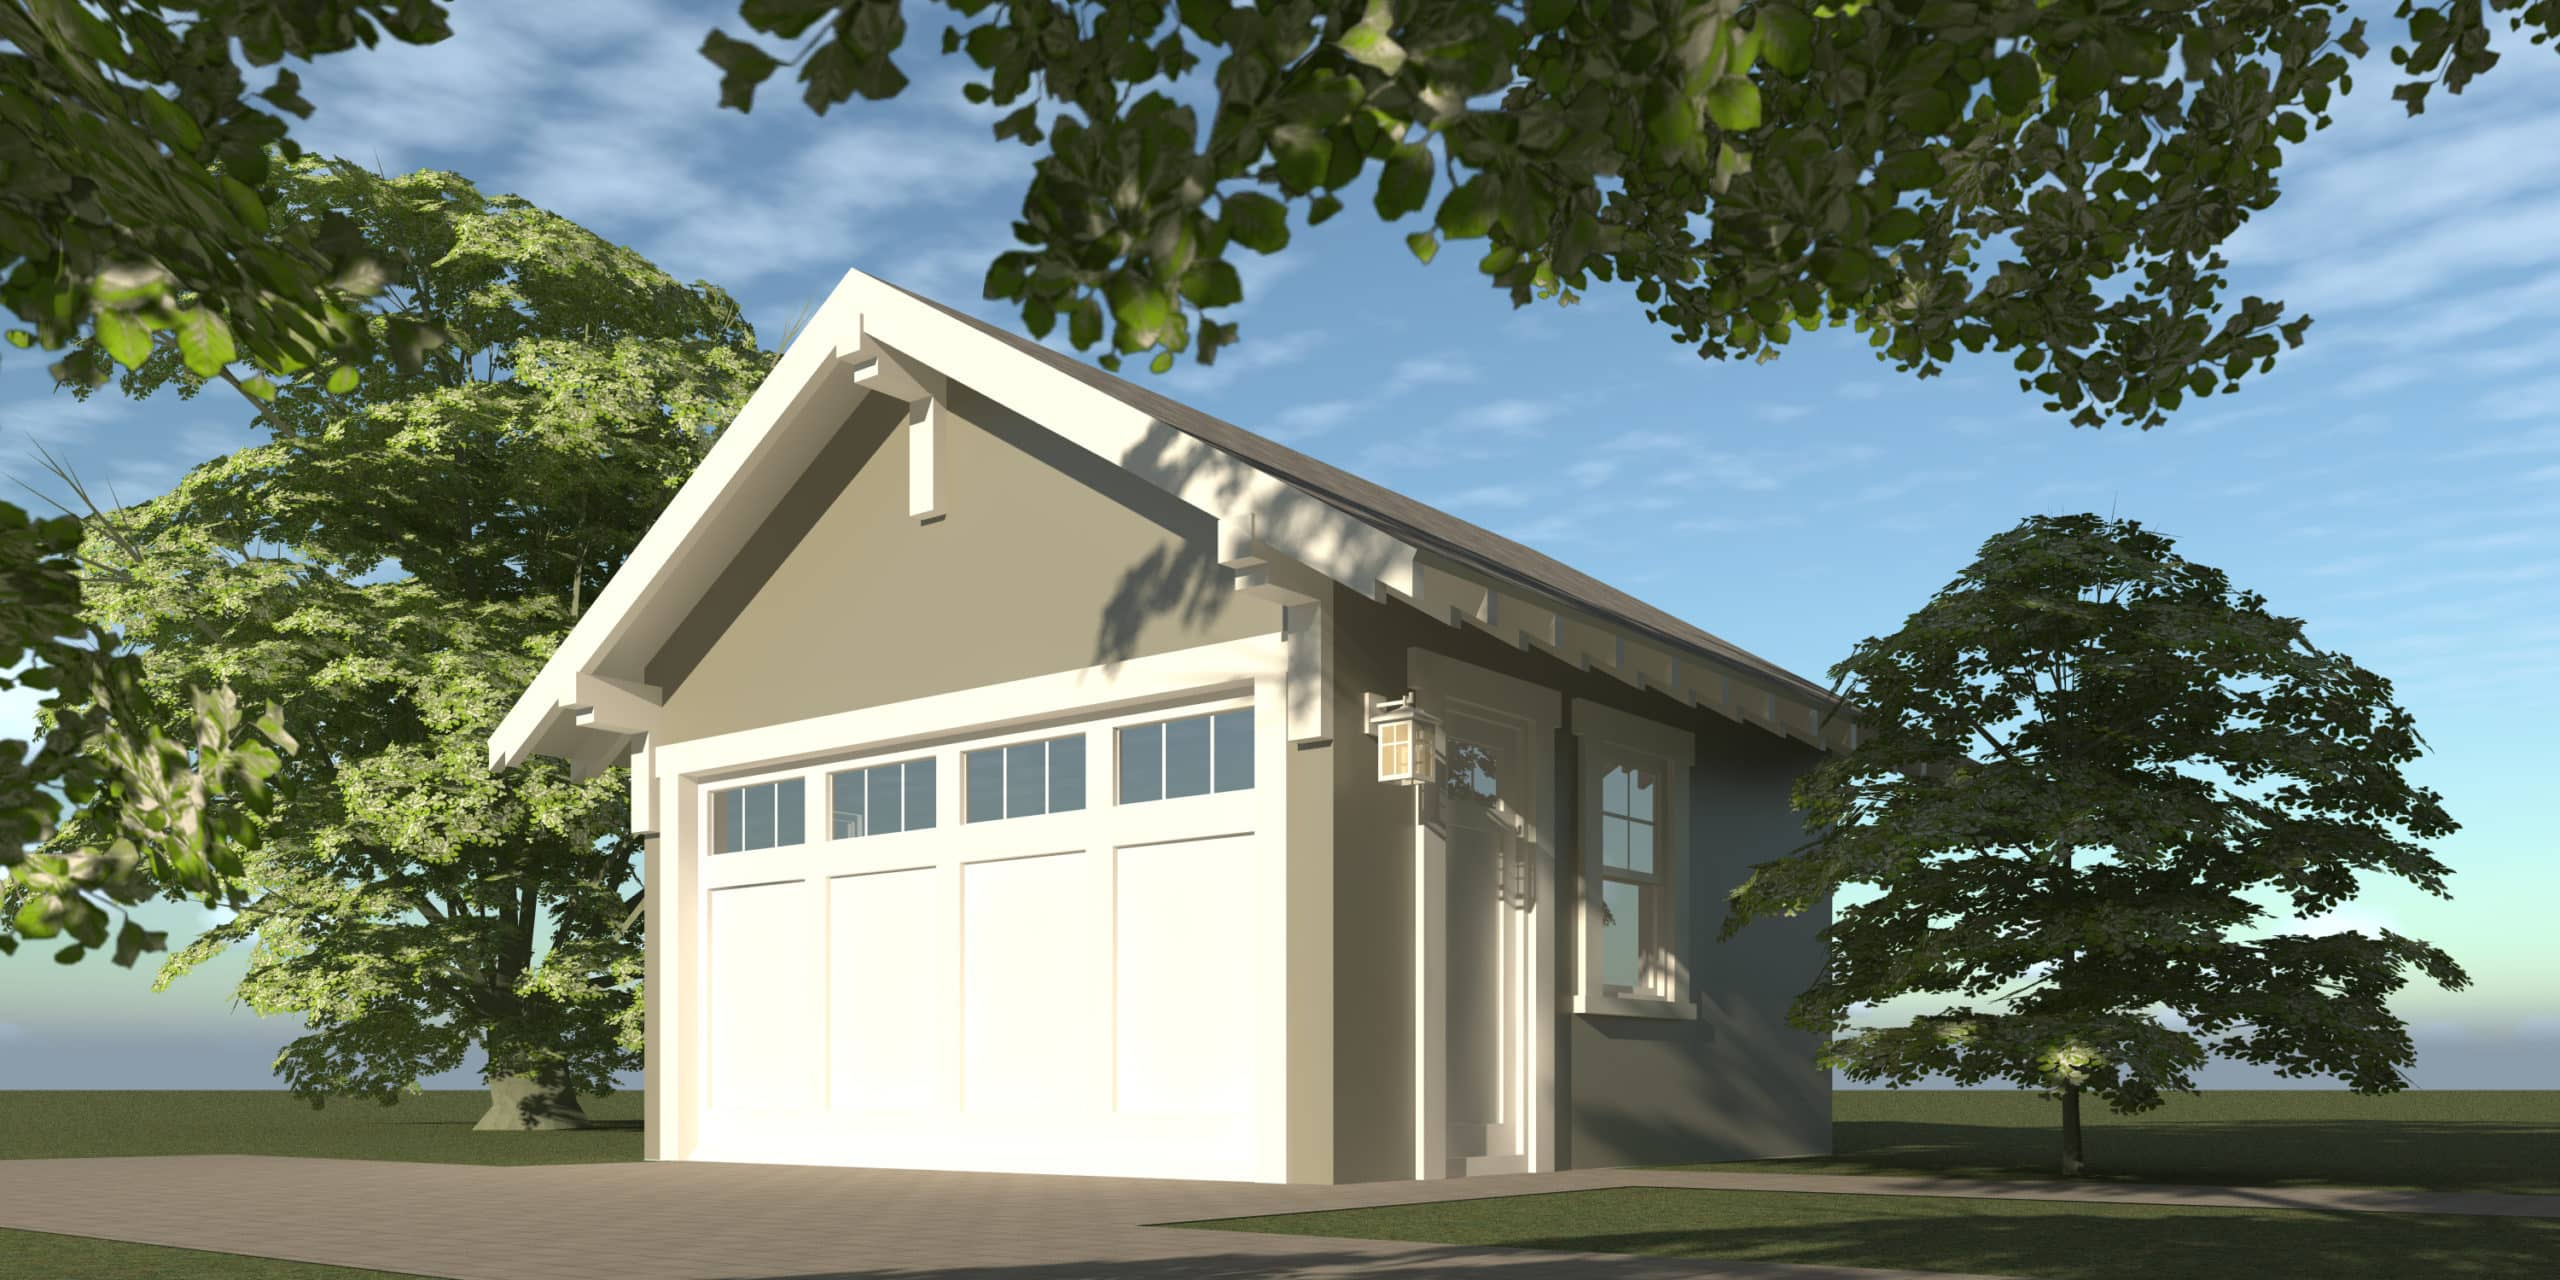 Garage - Blake House Plan by Tyree House Plans